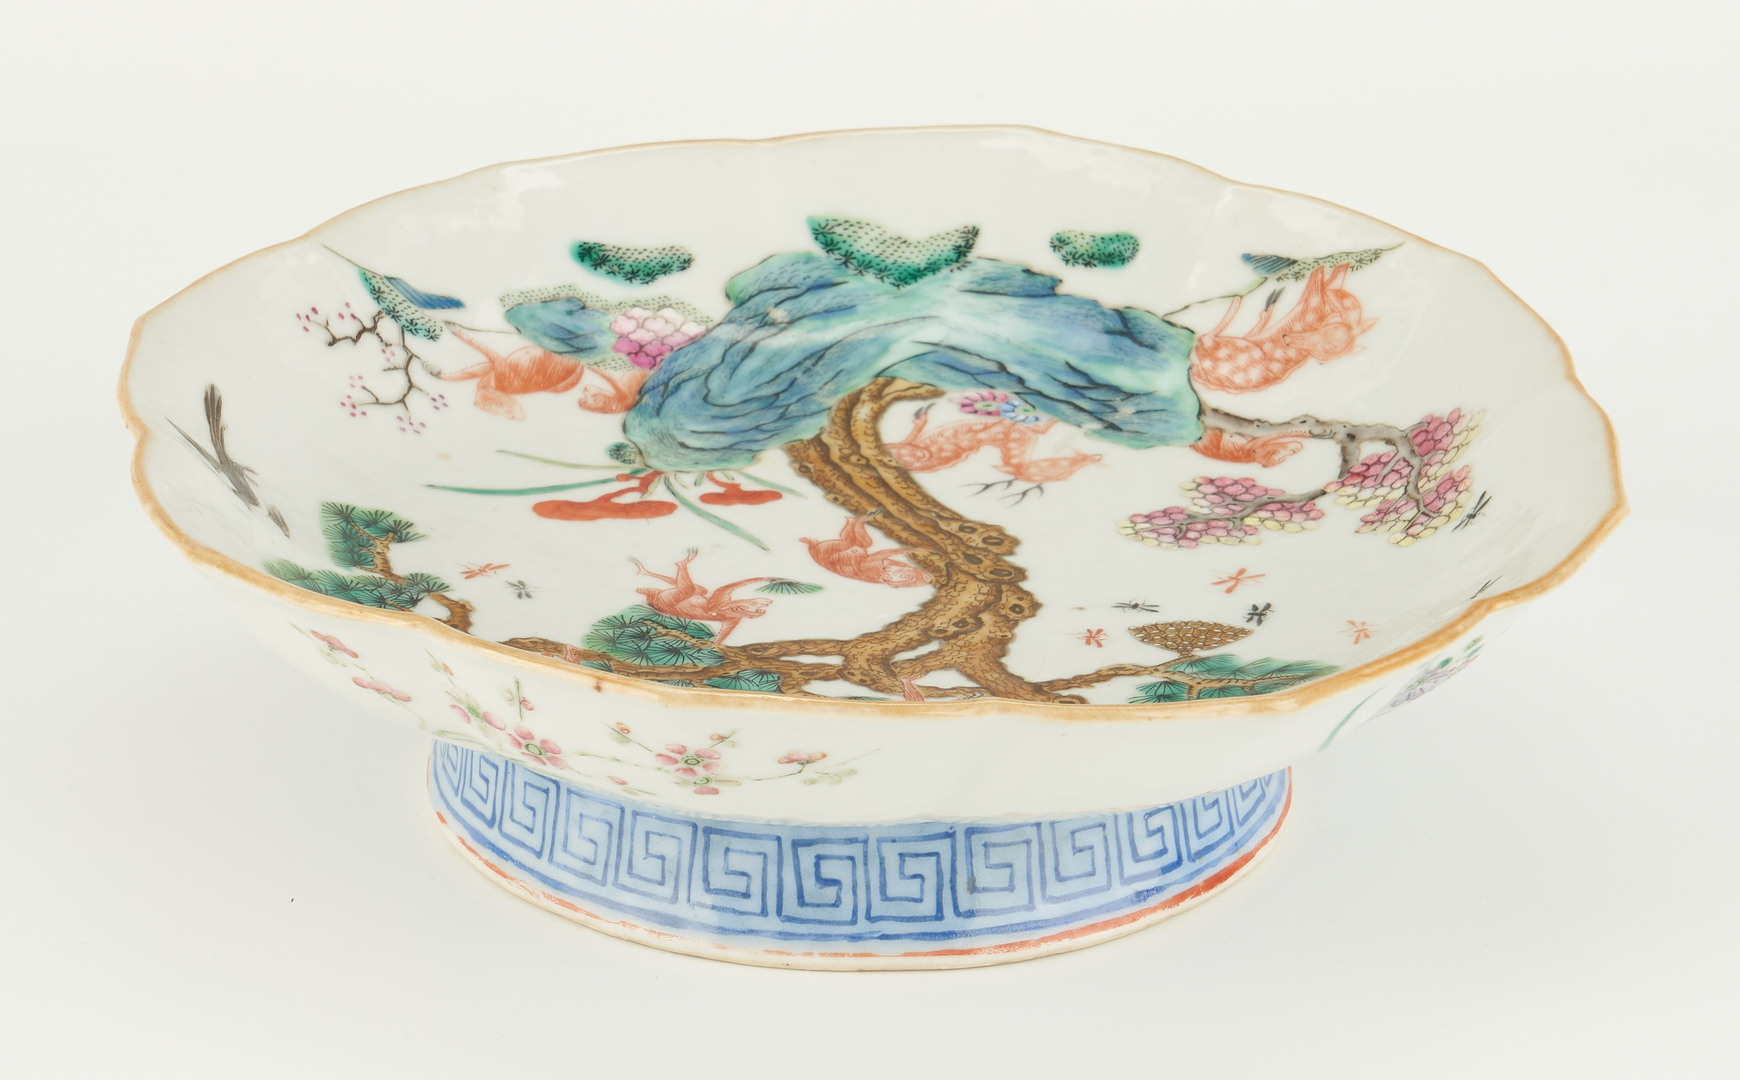 Lot 13: Dish with Monkey, Deer, & Wasp, Xianfeng